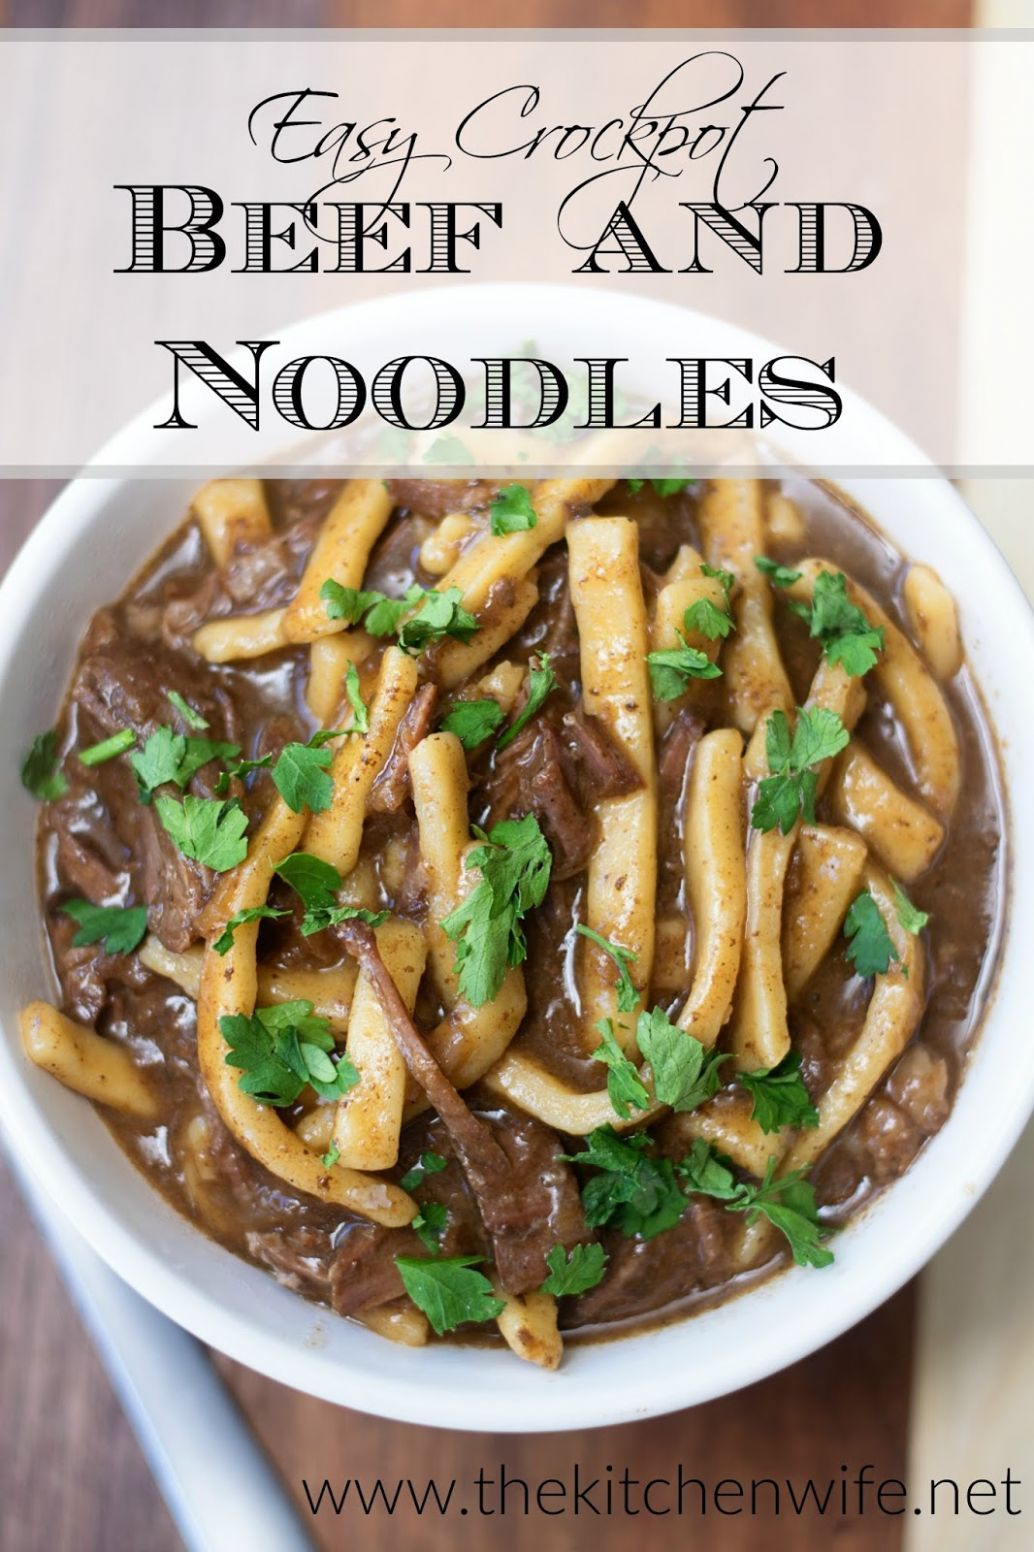 Easy Crockpot Beef and Noodles Recipe - Recipes Beef In Crock Pot